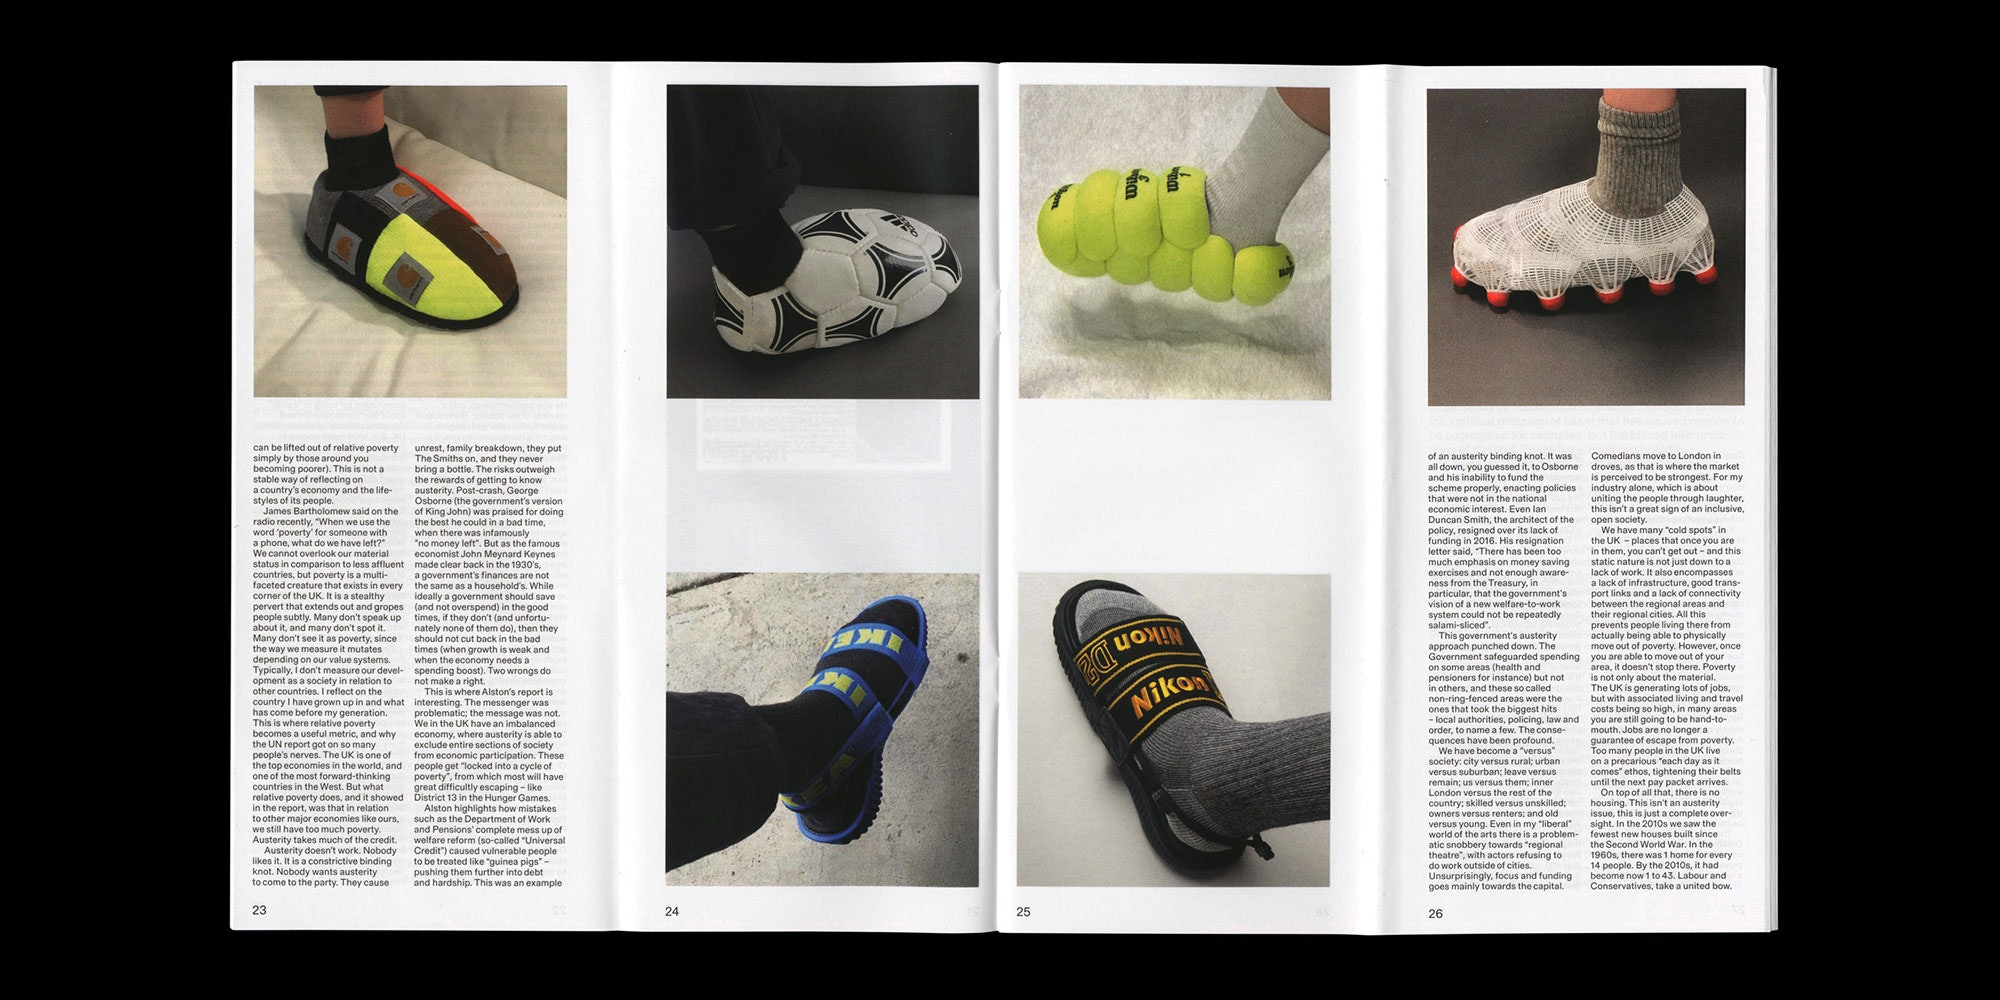 Lessons in disrupting power from Chelsea Manning and Wolfgang Tillmans -  STACK magazines